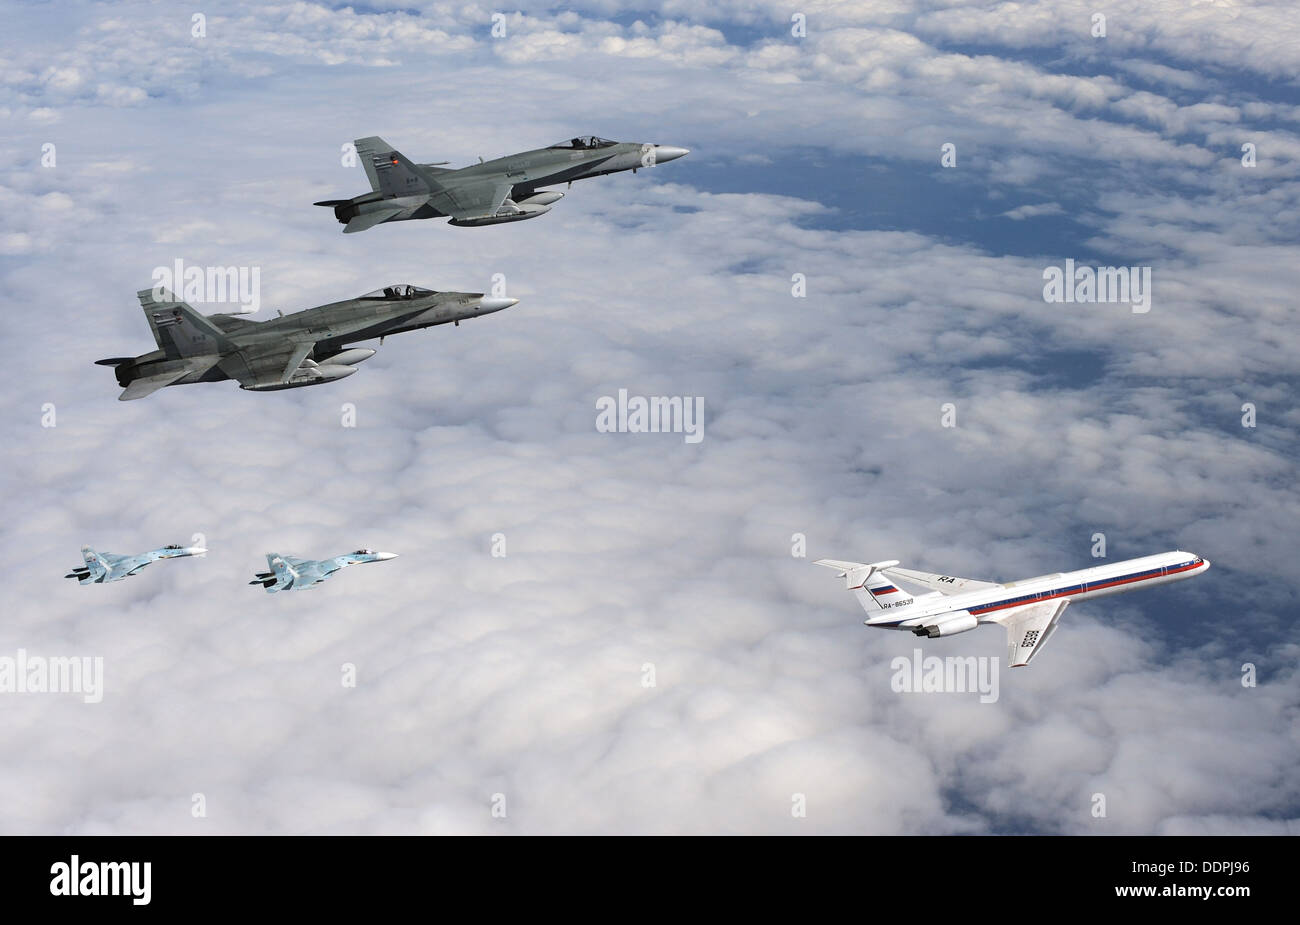 Canadian CF18 Hornet aircraft from 409 Squadron in Cold Lake, Alberta and Russian Su-27 aircraft from Anadyr, Russia Stock Photo